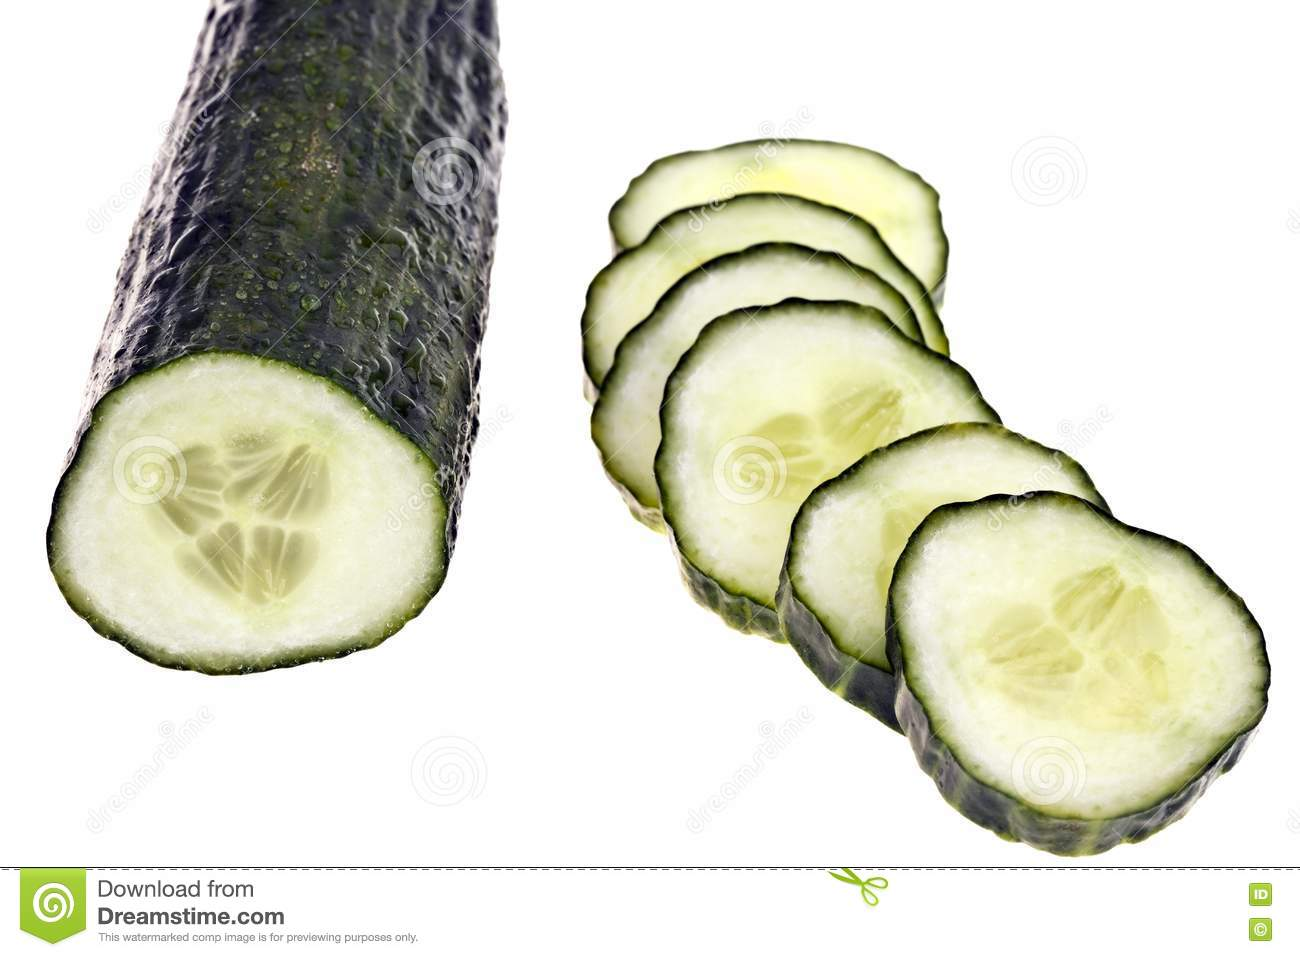 Cucumber - Completely Isolated Royalty Free Stock Image - Image ...: dreamstime.com/royalty-free-stock-image-cucumber-completely...